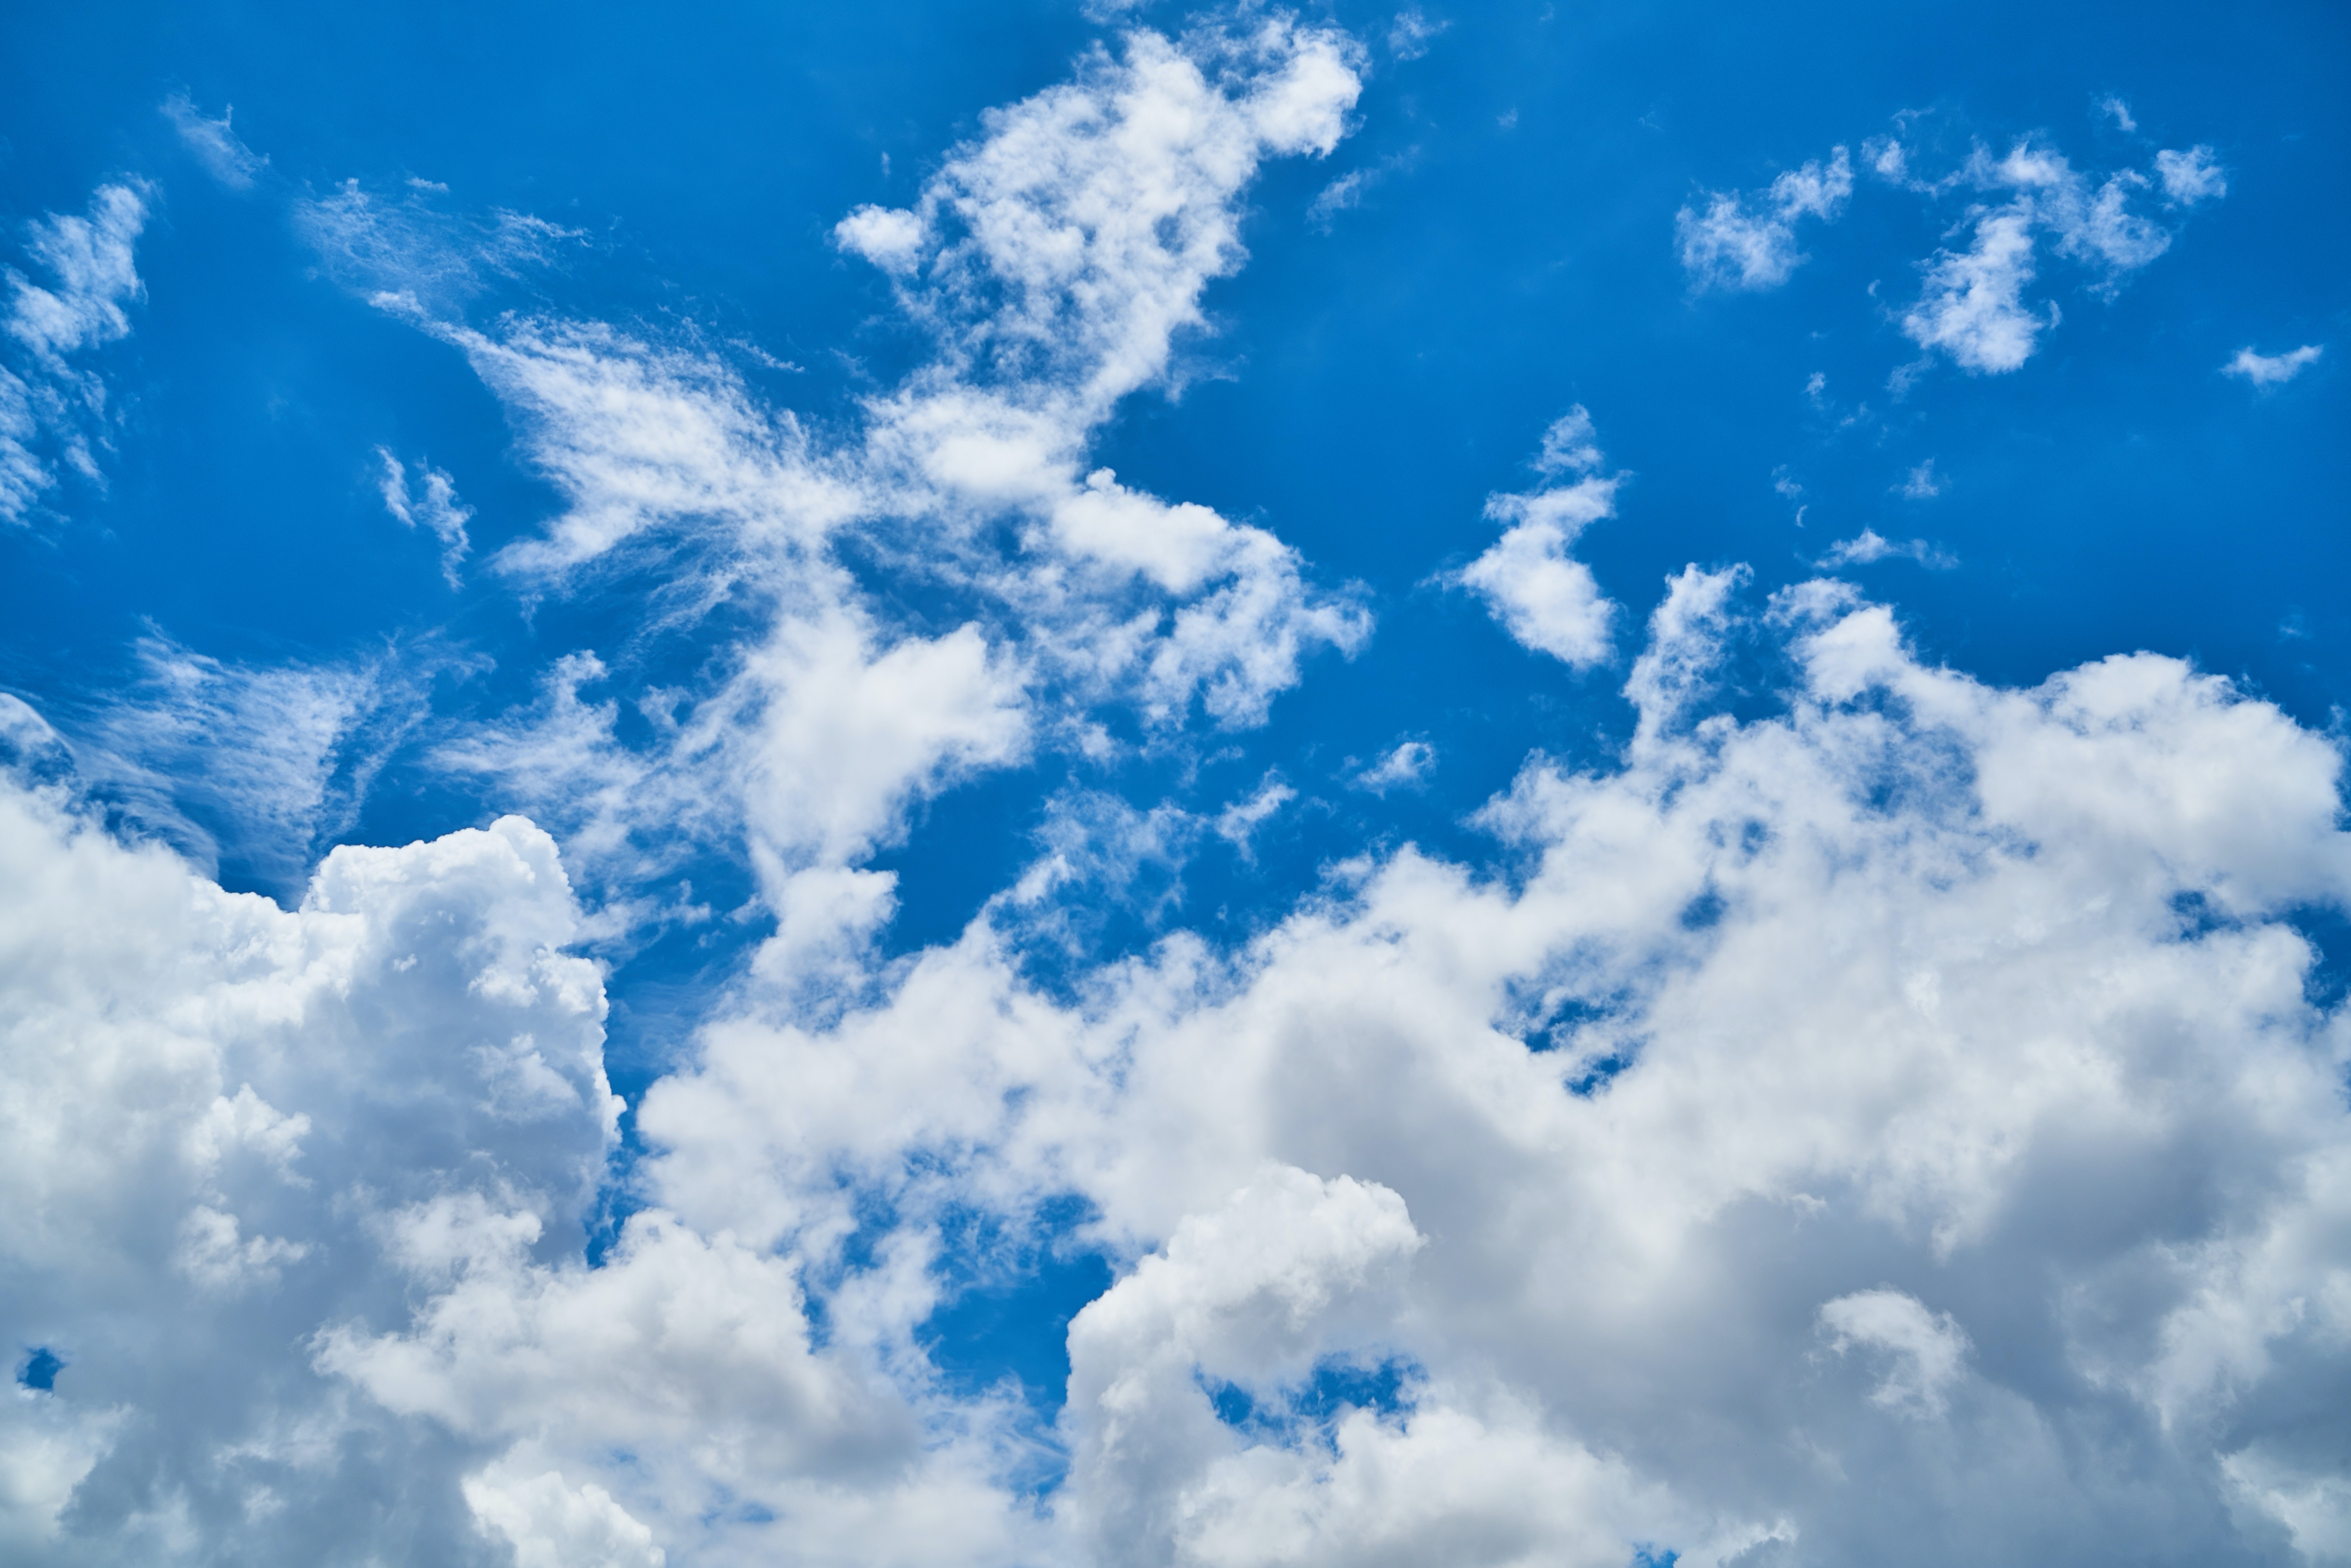 Blue Sky With Clouds Wallpaper 56 Images: Cloud Images · Pexels · Free Stock Photos